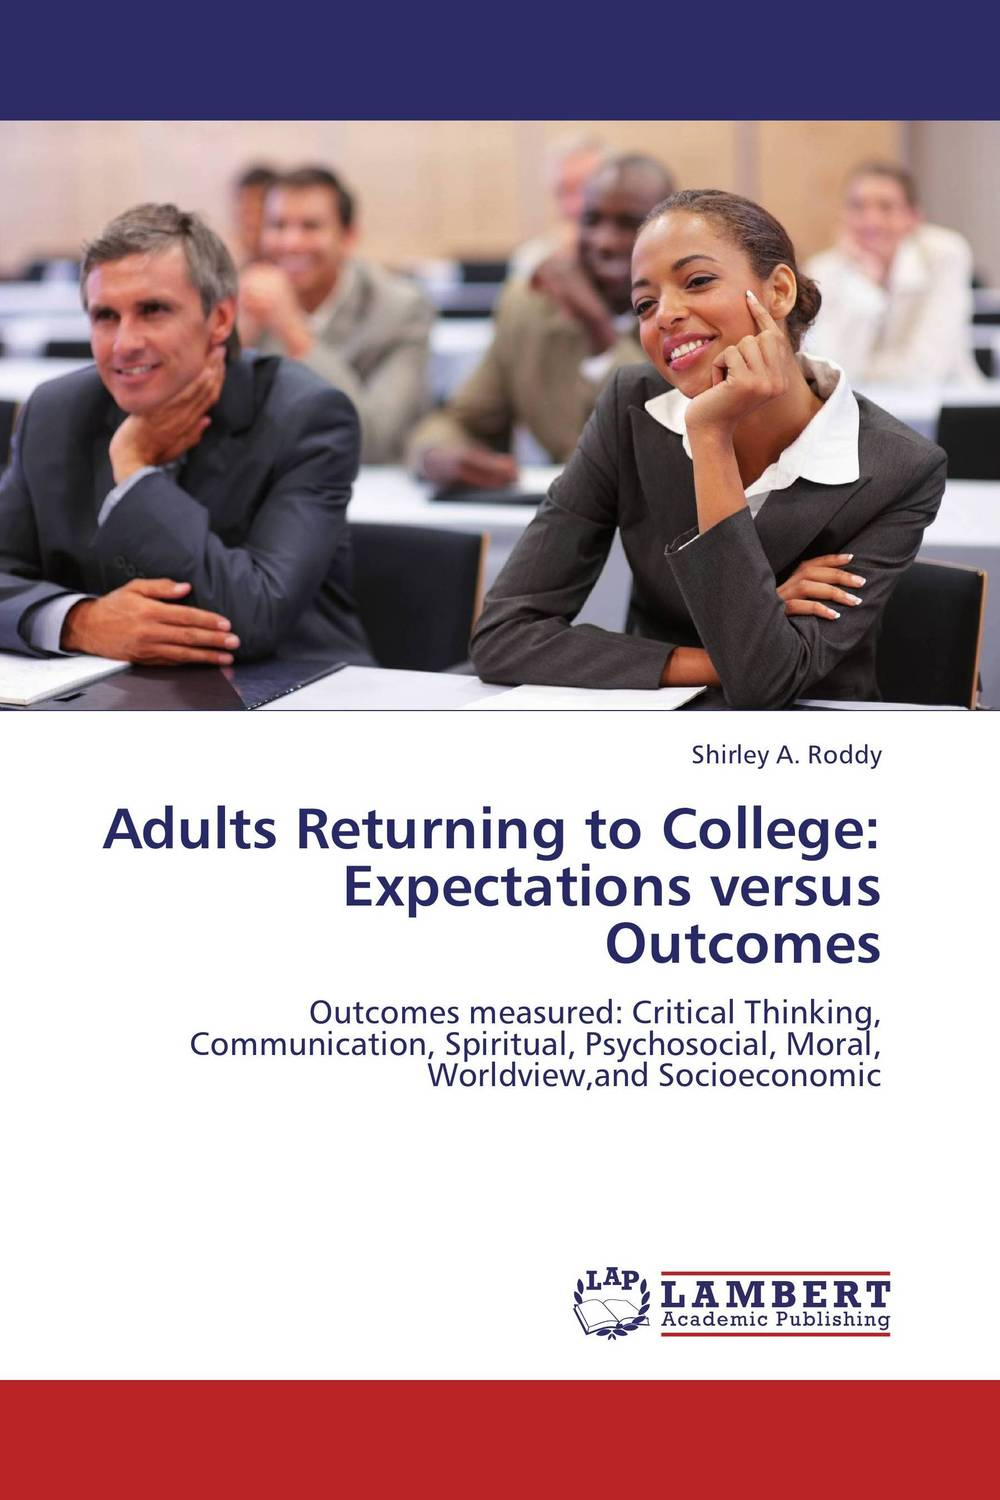 Adults Returning to College: Expectations versus Outcomes doug lemov teach like a champion 2 0 62 techniques that put students on the path to college